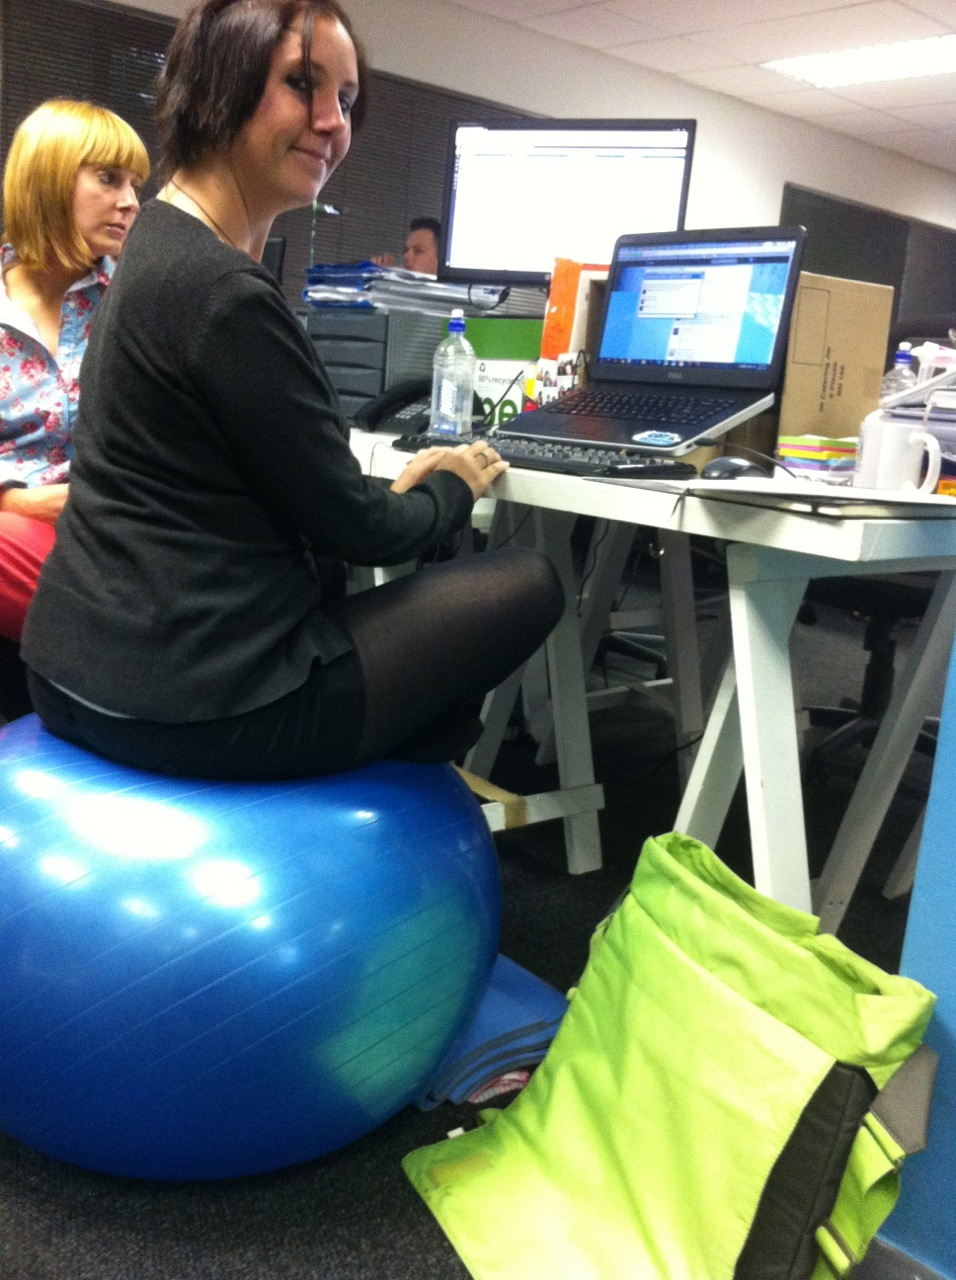 Exercise Ball Desk Chair Office Chair Vs Exercise Ball The Pain In The Blog